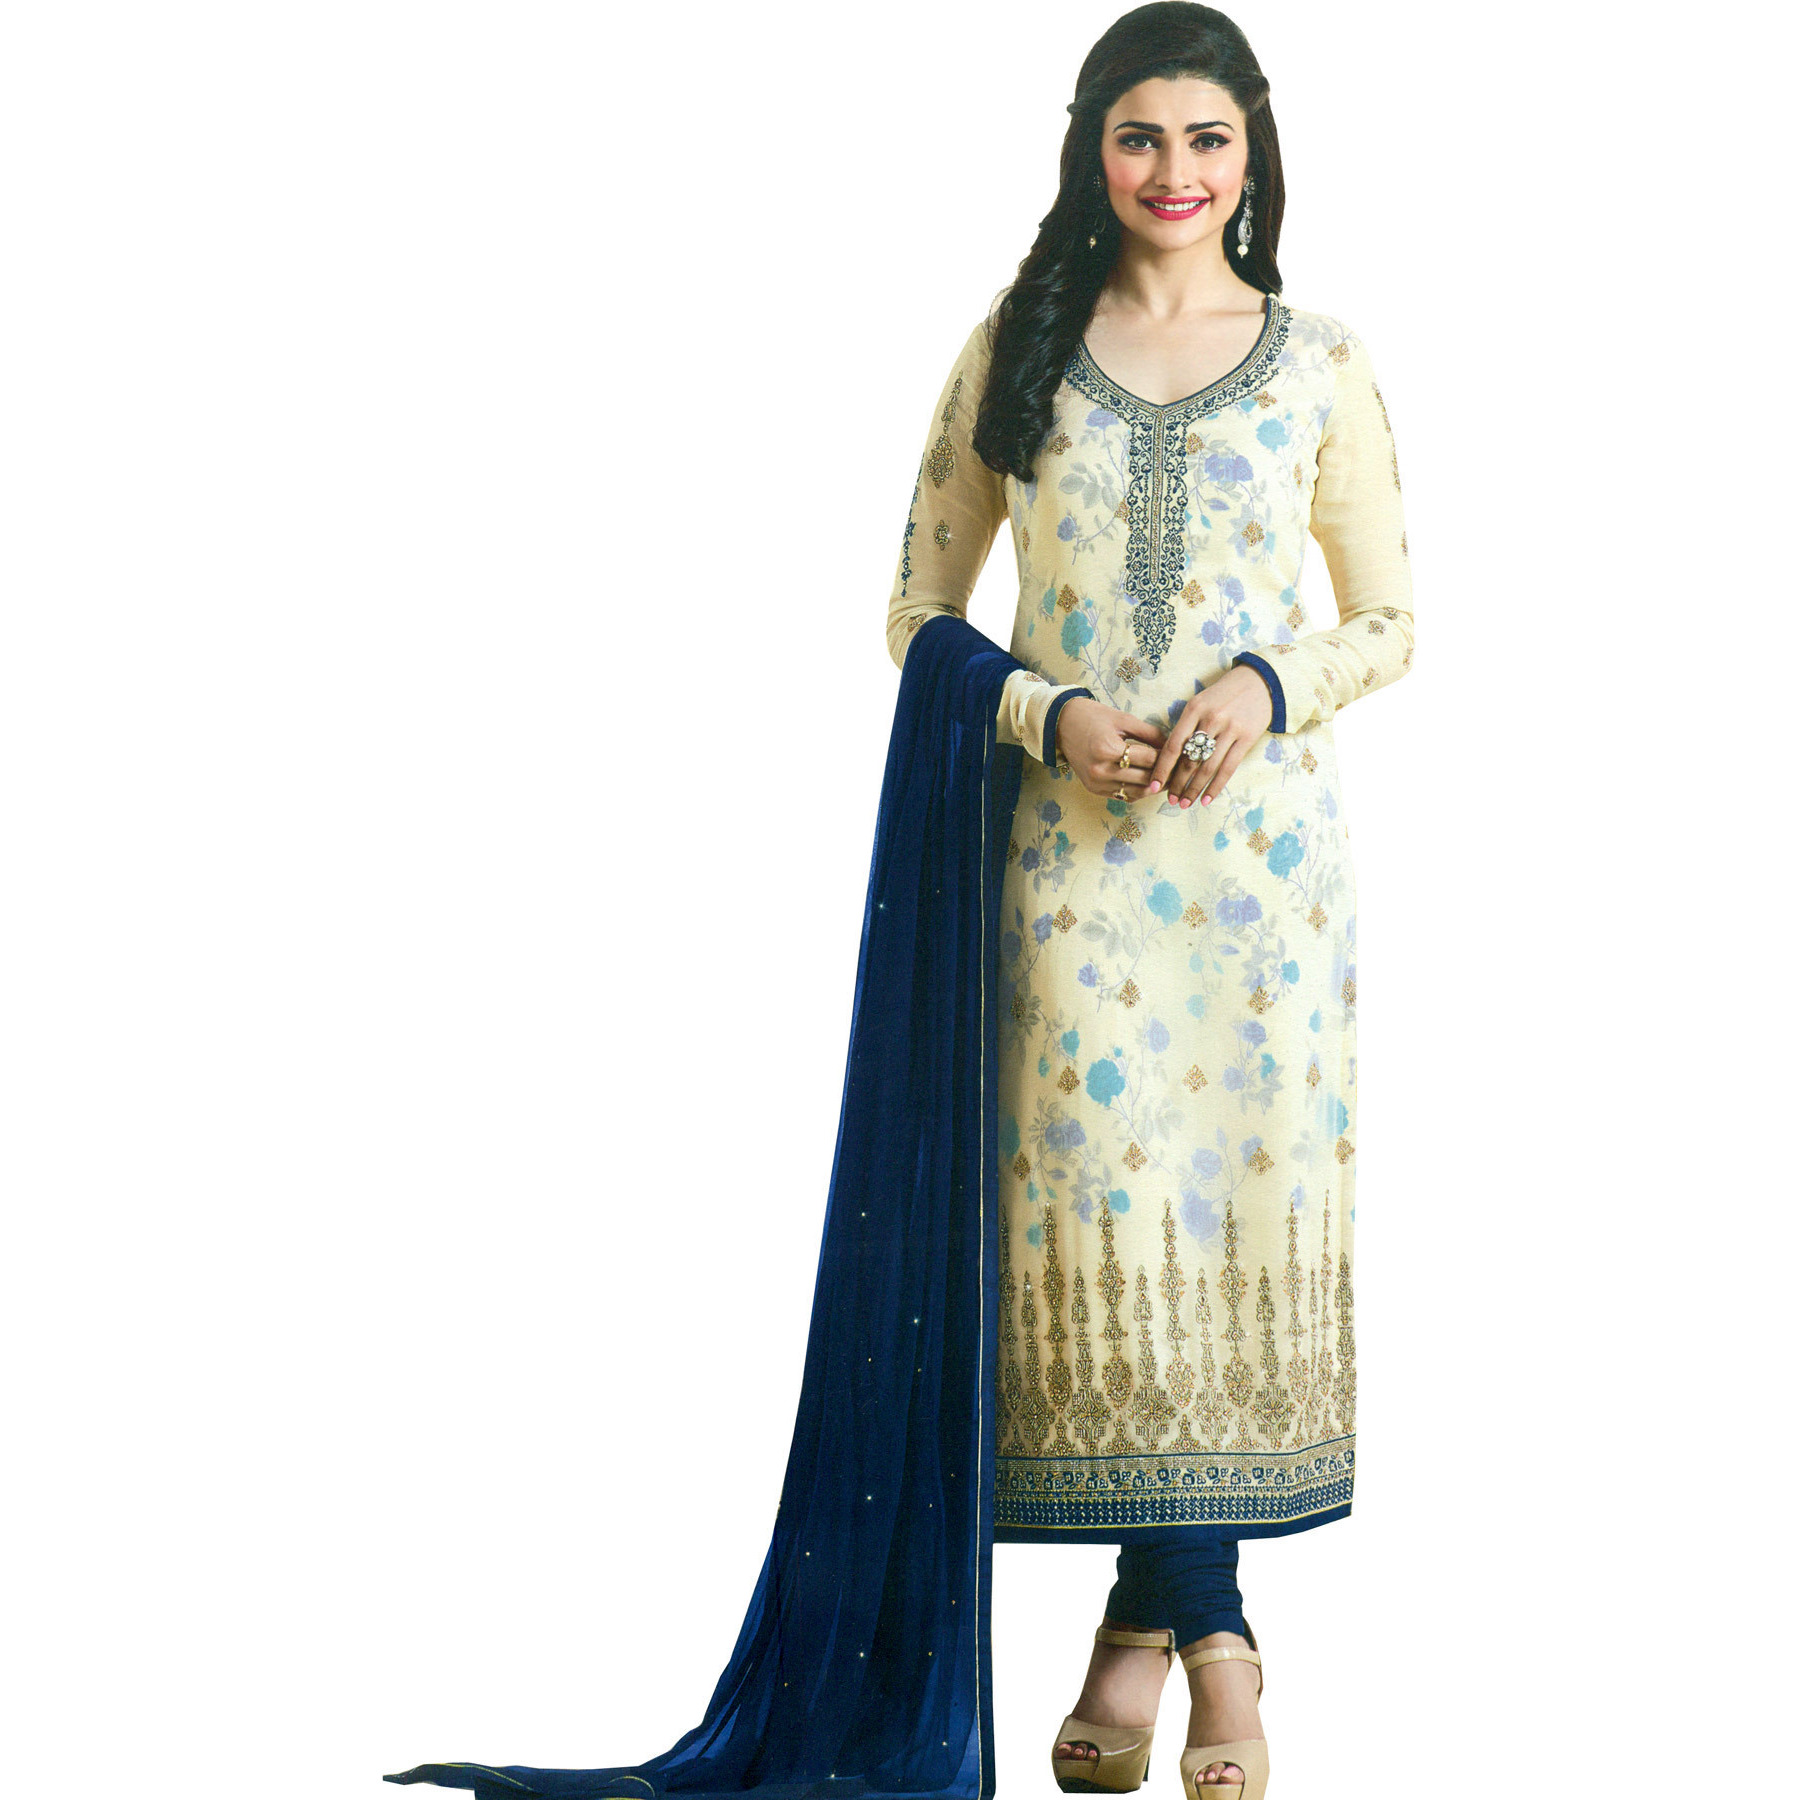 Cream and Blue Prachi Designer Long Choodidaar Kameez Suit with Printed Flowers and Embroidery in Zari Thread